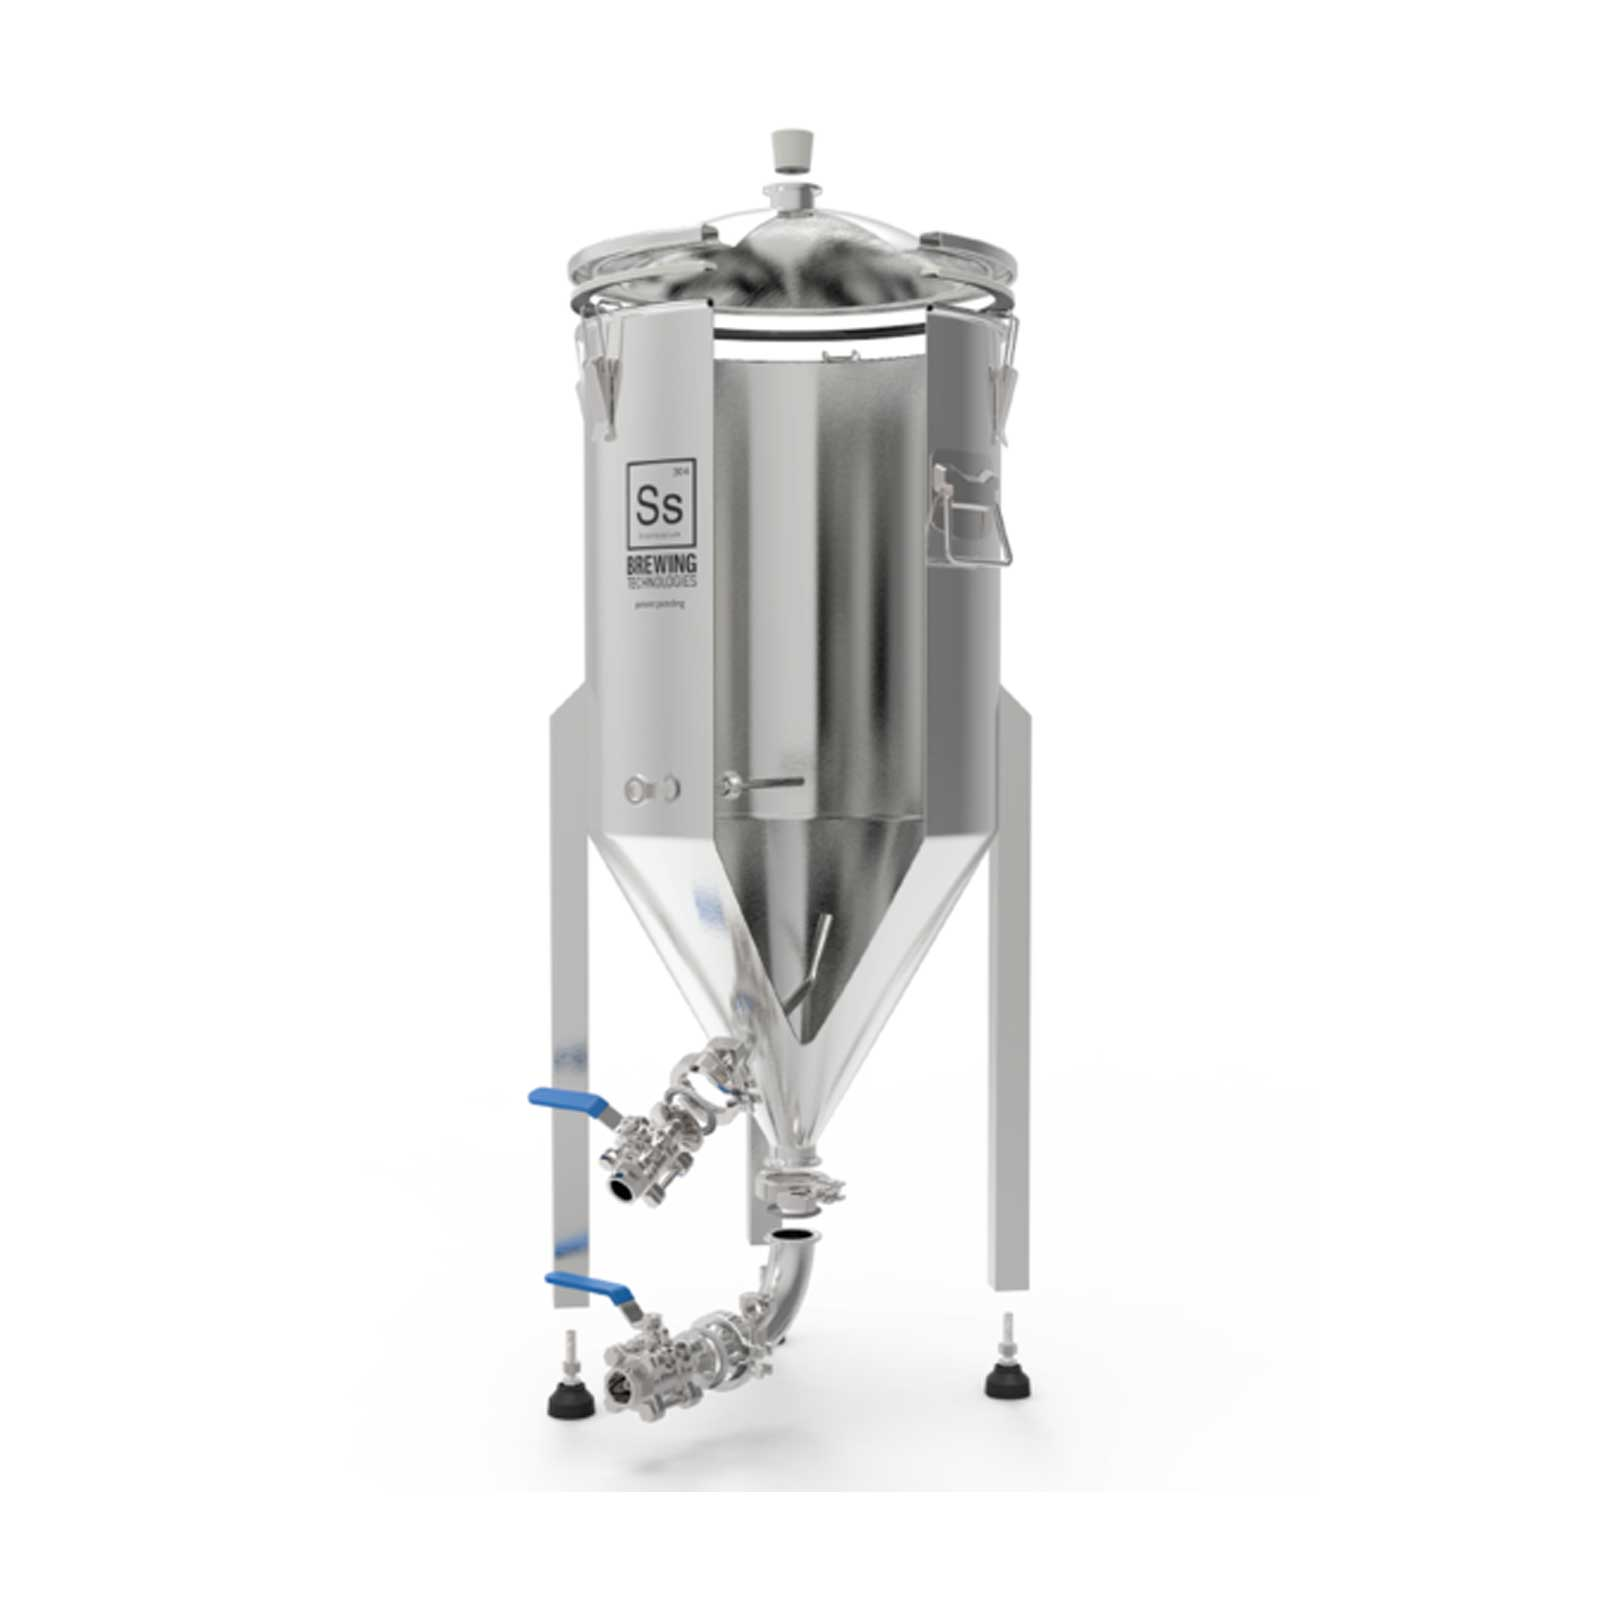 Fermentatore Chronical 7 Gal (26.5lt)